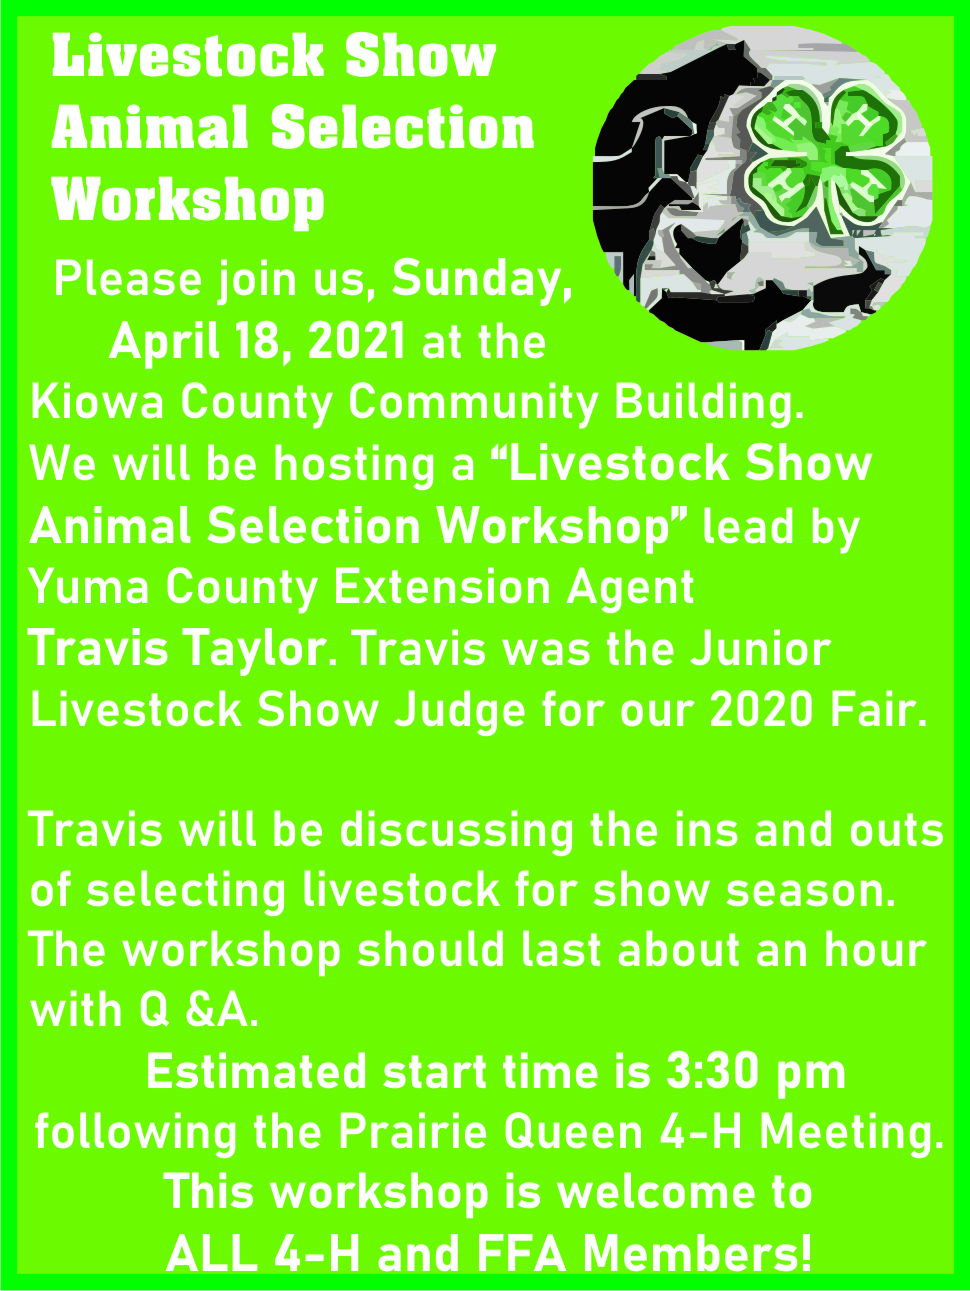 AD 2021-04 Livestock Show Animal Selection